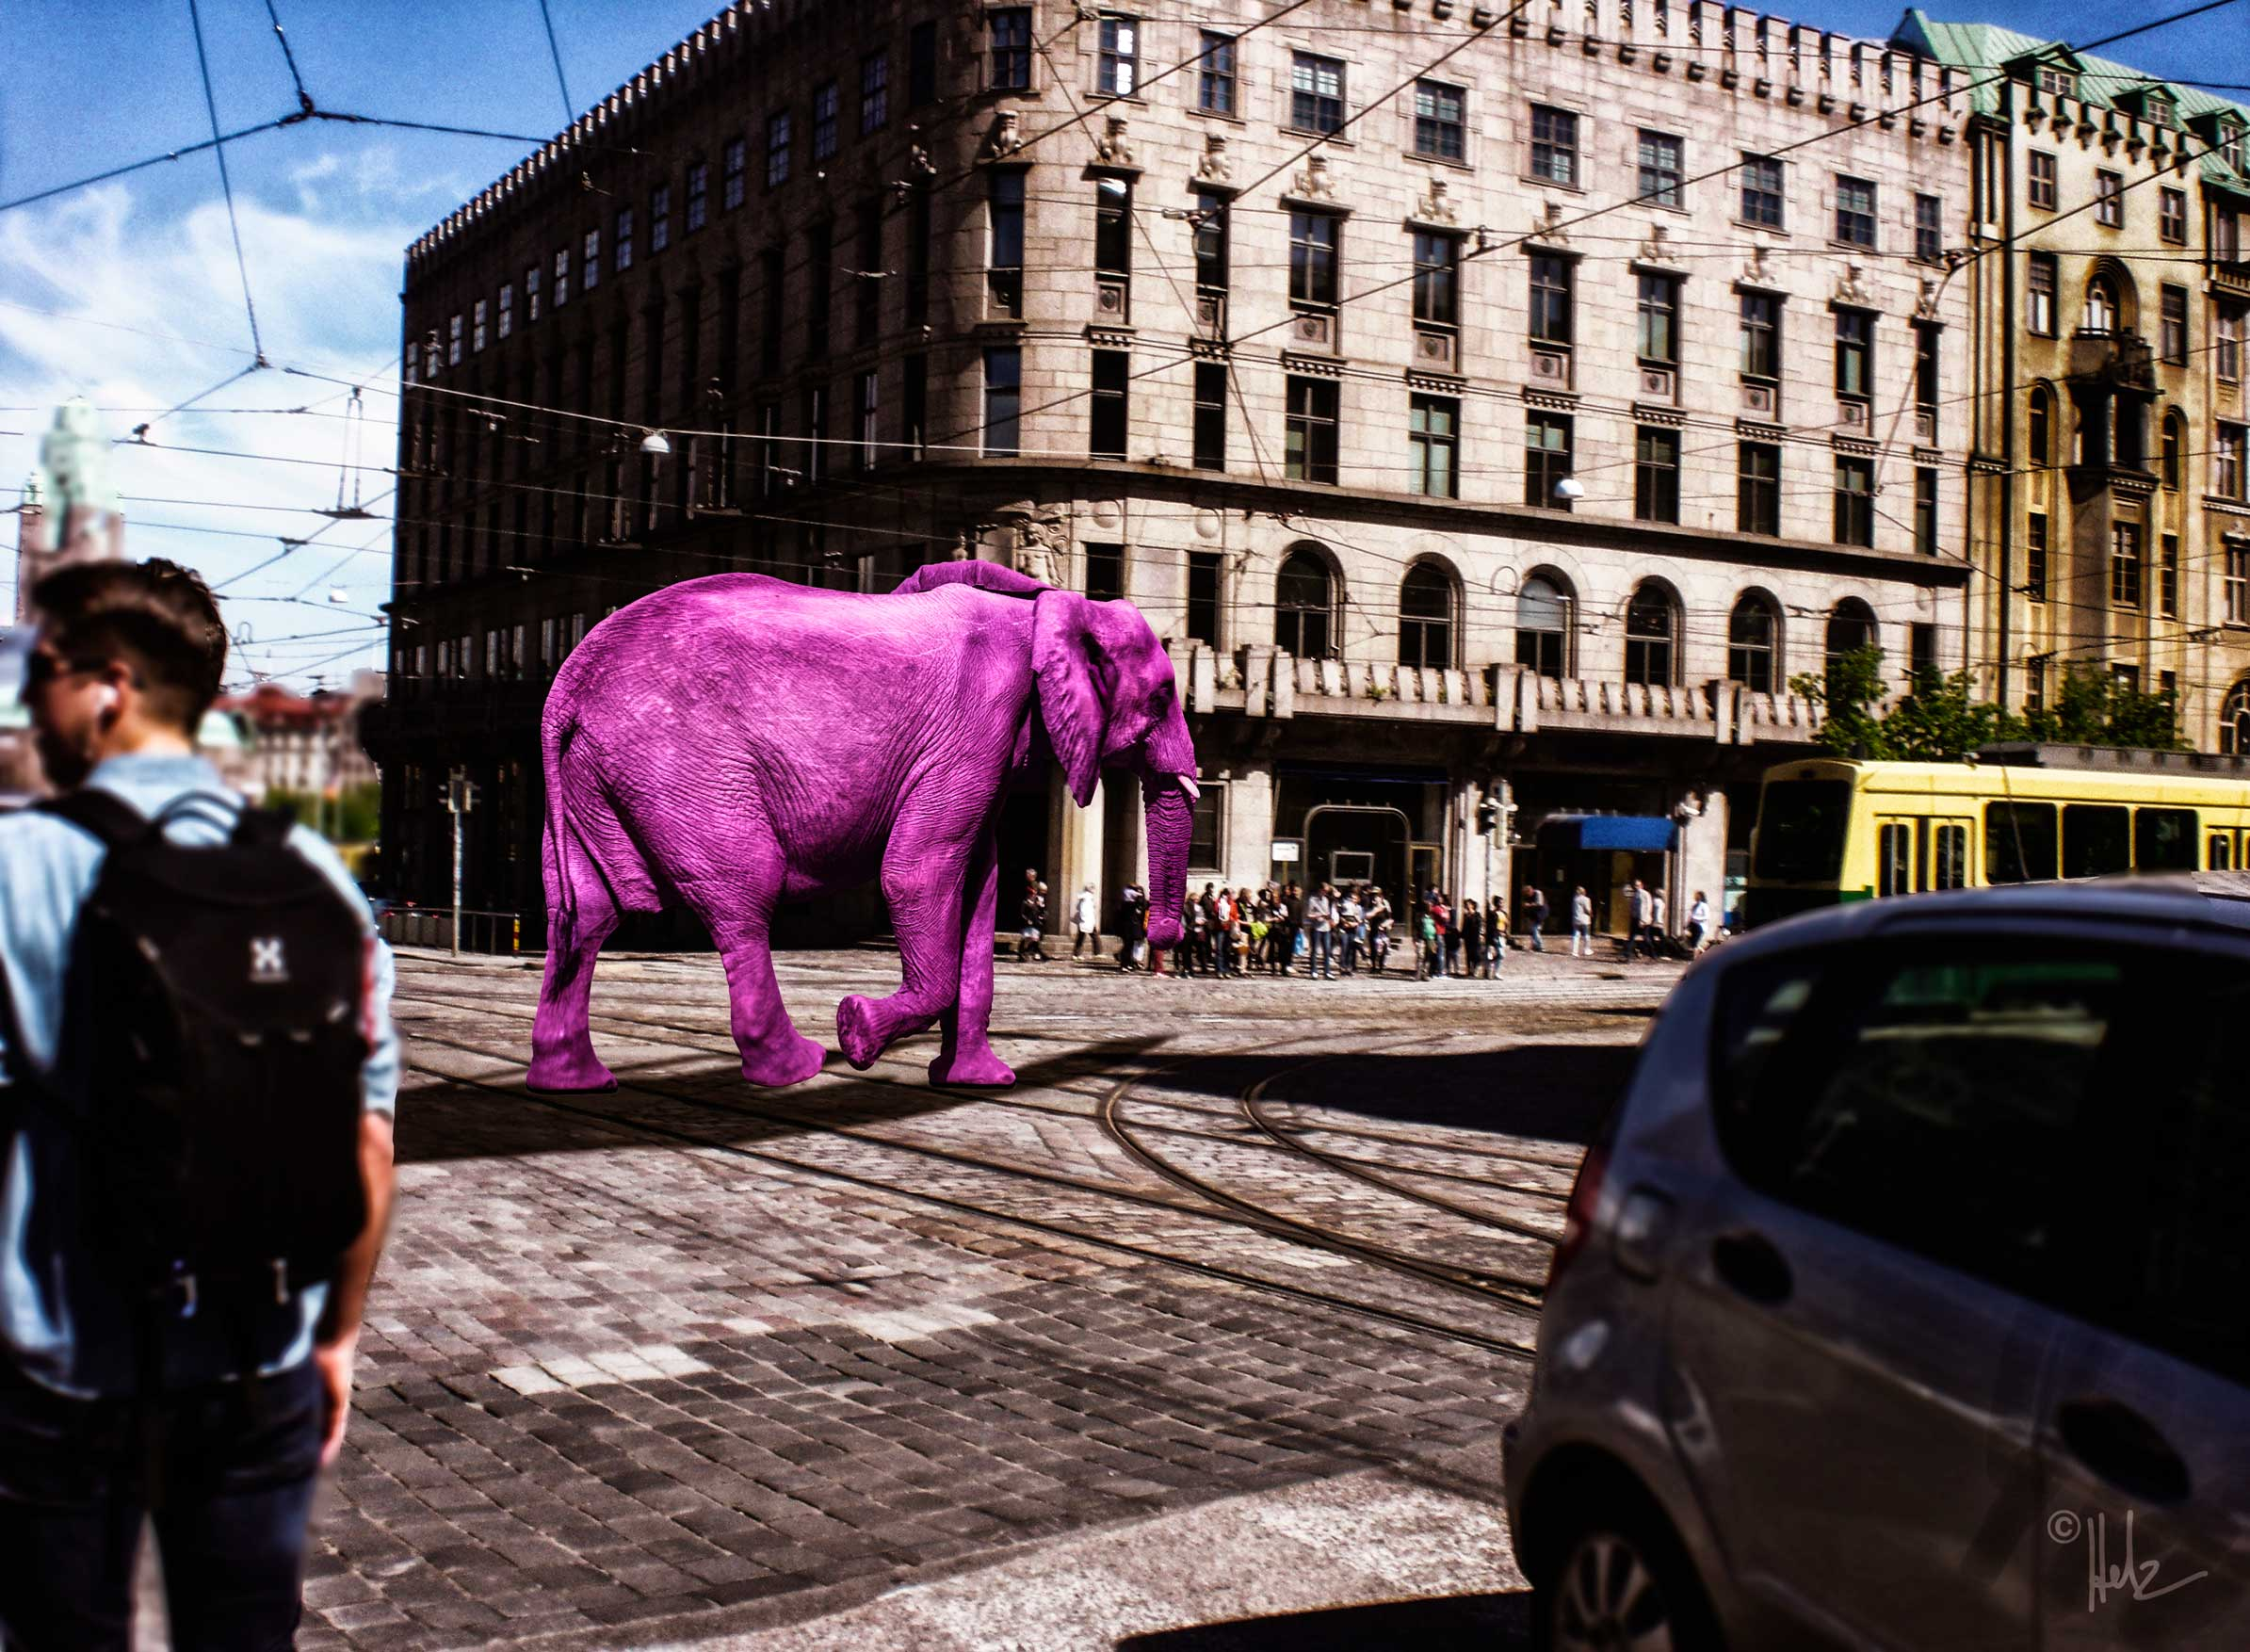 Helsinki Secrets revealed: Elephant fight